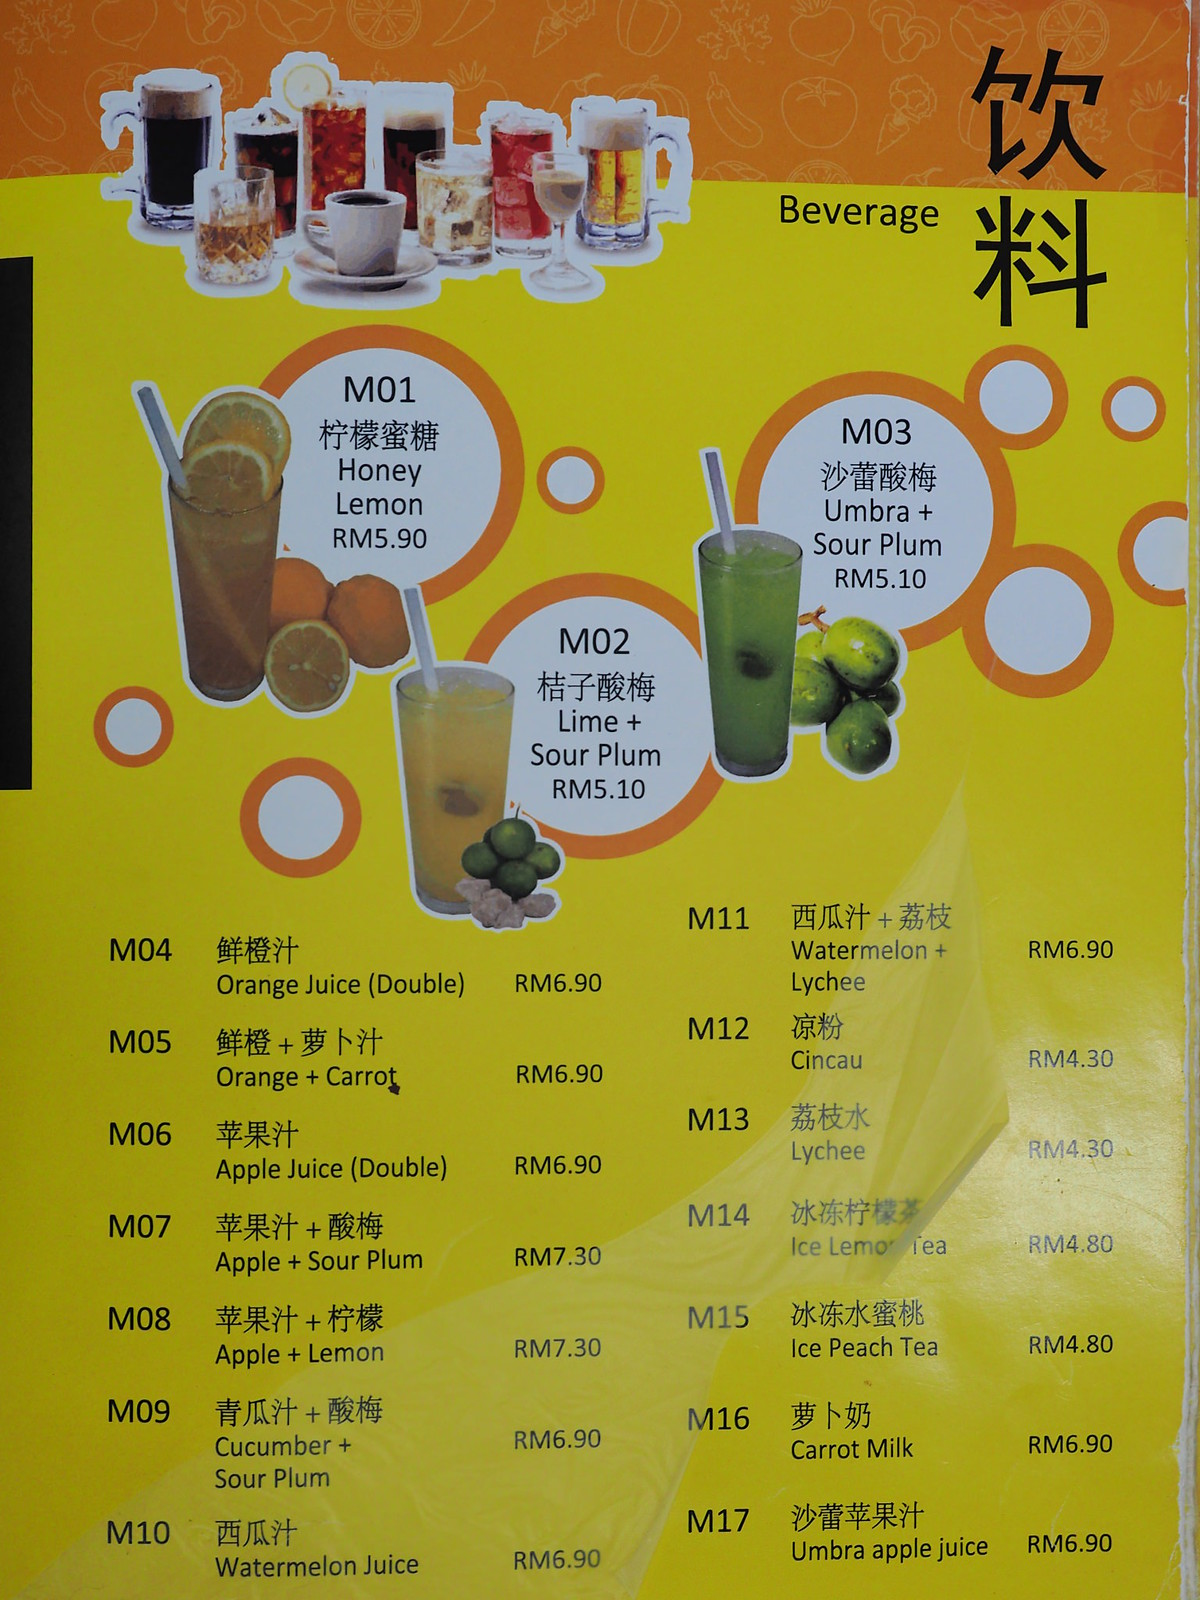 Beverages menu from Pangkor Village Seafood, Taman Megah